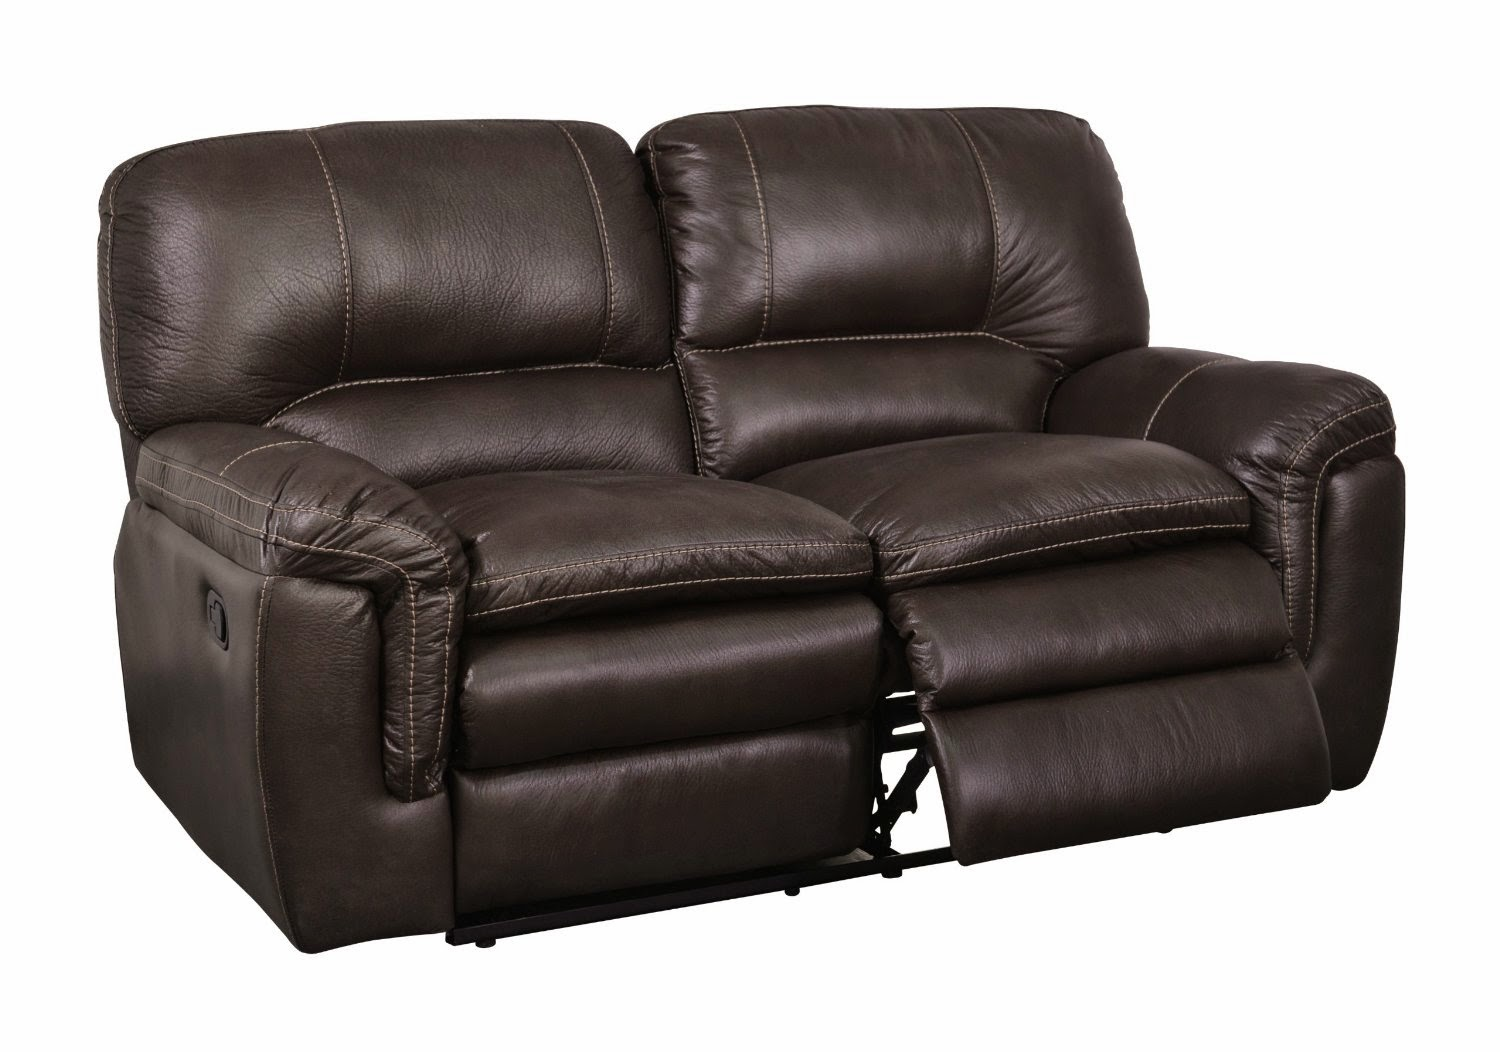 Top Seller Reclining And Recliner Sofa Loveseat Micro